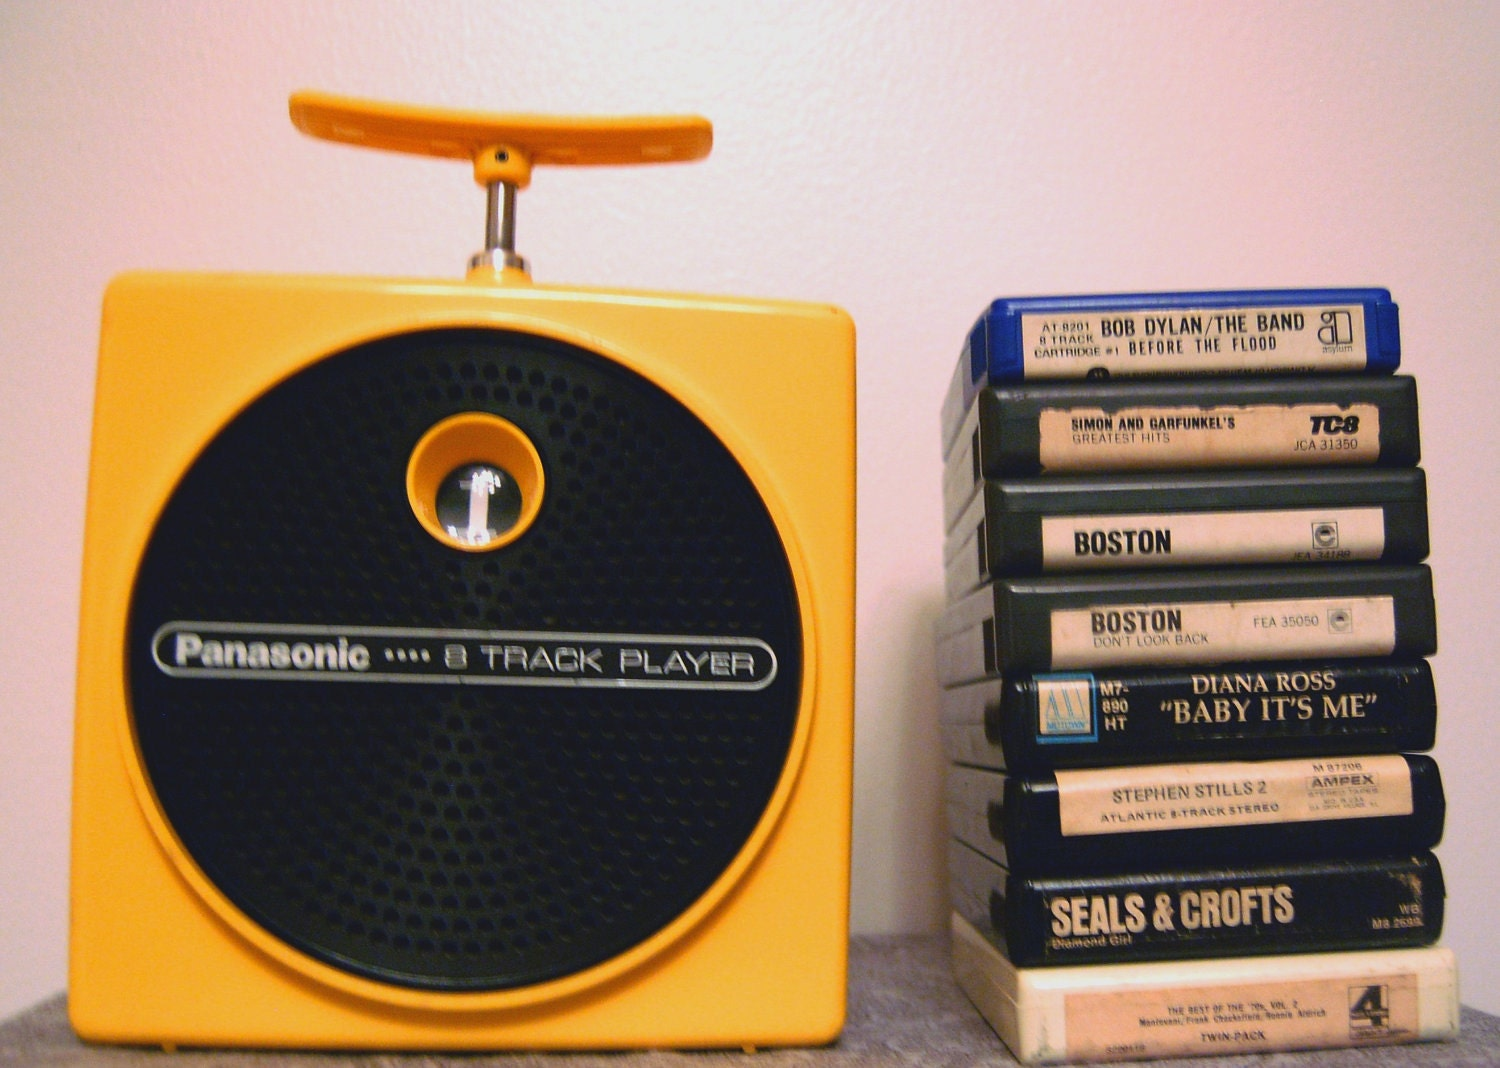 Panasonic Tnt 8 Track Player And Tapes By Retromodstore On